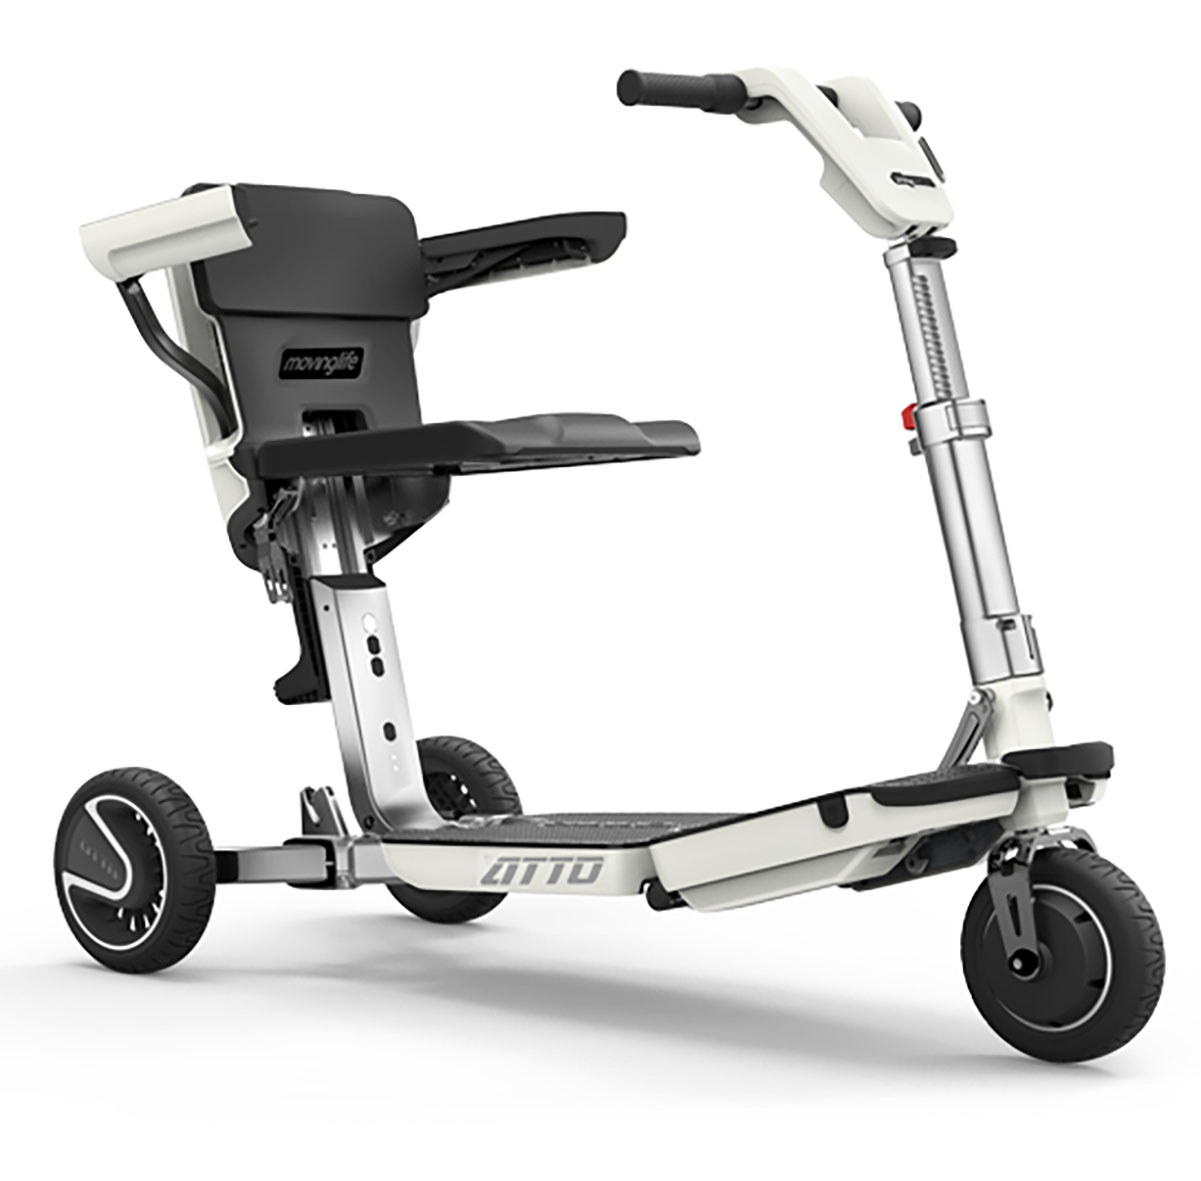 ATTO Folding/Lightweight Mobility Scooter